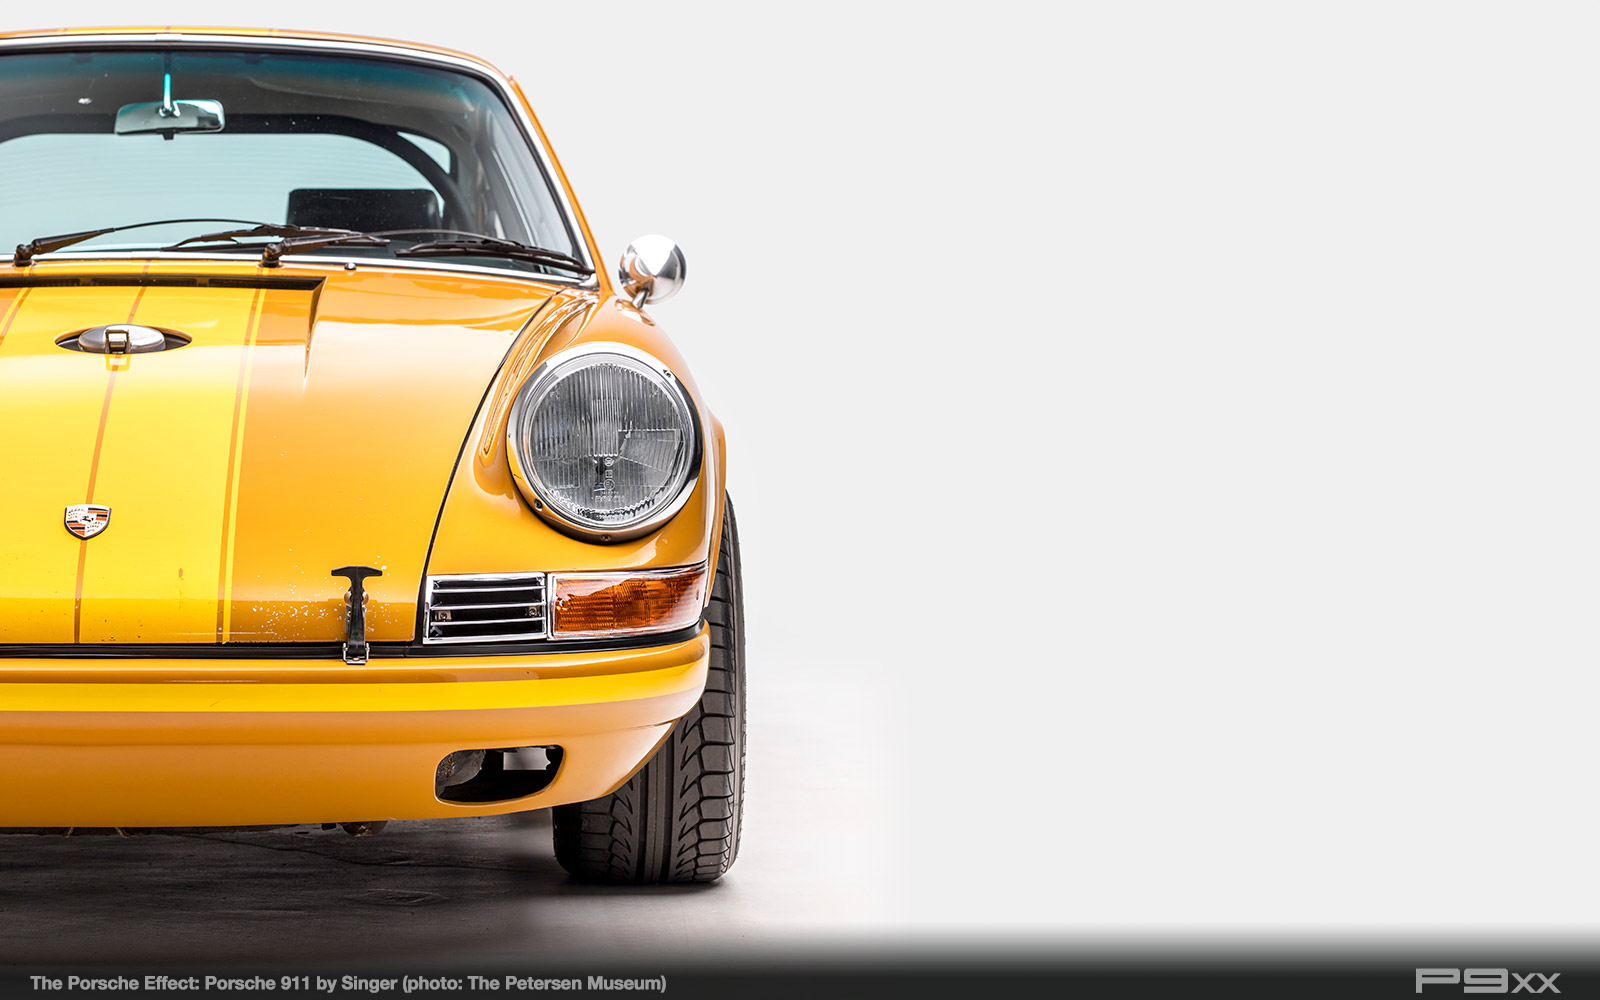 Singer-911-Petersen-Automotive-Museum-The-Porsche-Effect-287